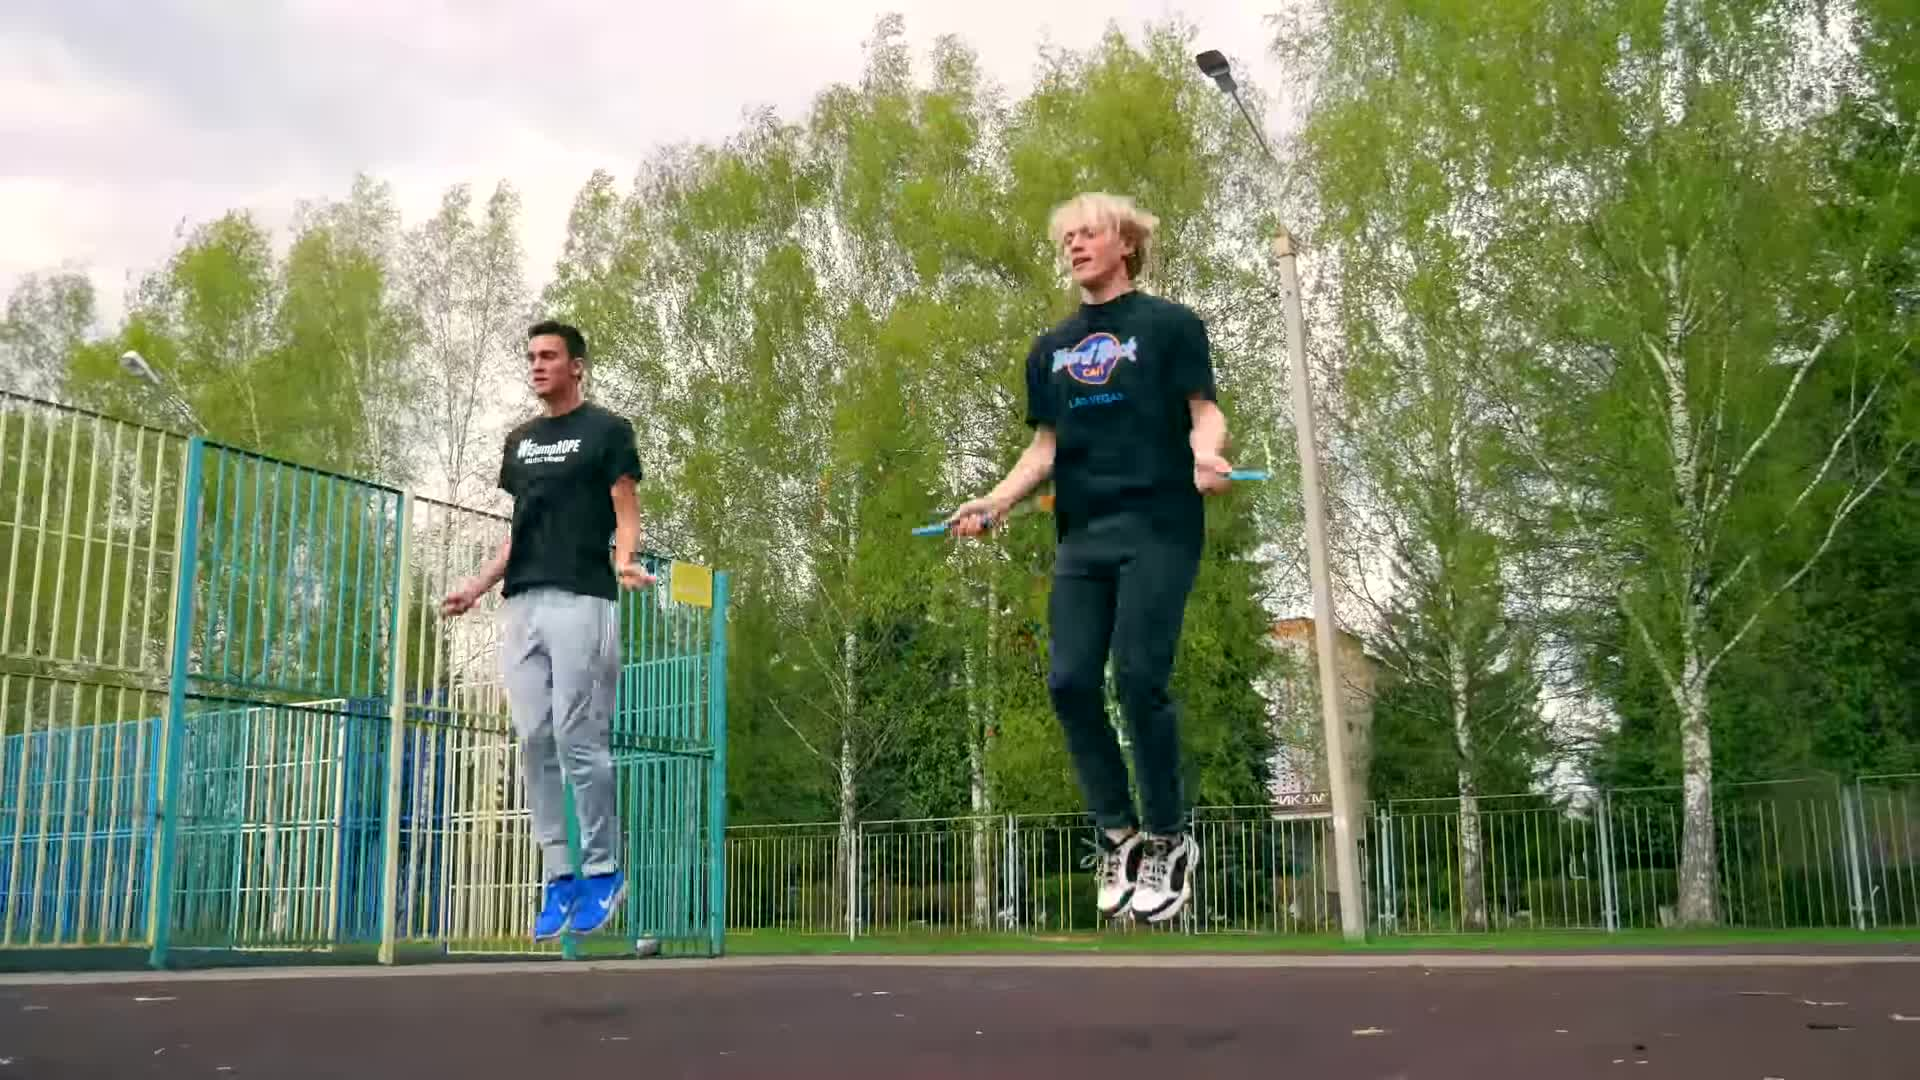 devin meek, fail, film & animation, jump forrest jump, jump rope challenge, pie, russia, wejumprope, wejumprope music videos, yana jump rope, PIE IN THE FACE Jump Rope Challenge! in Russia! GIFs